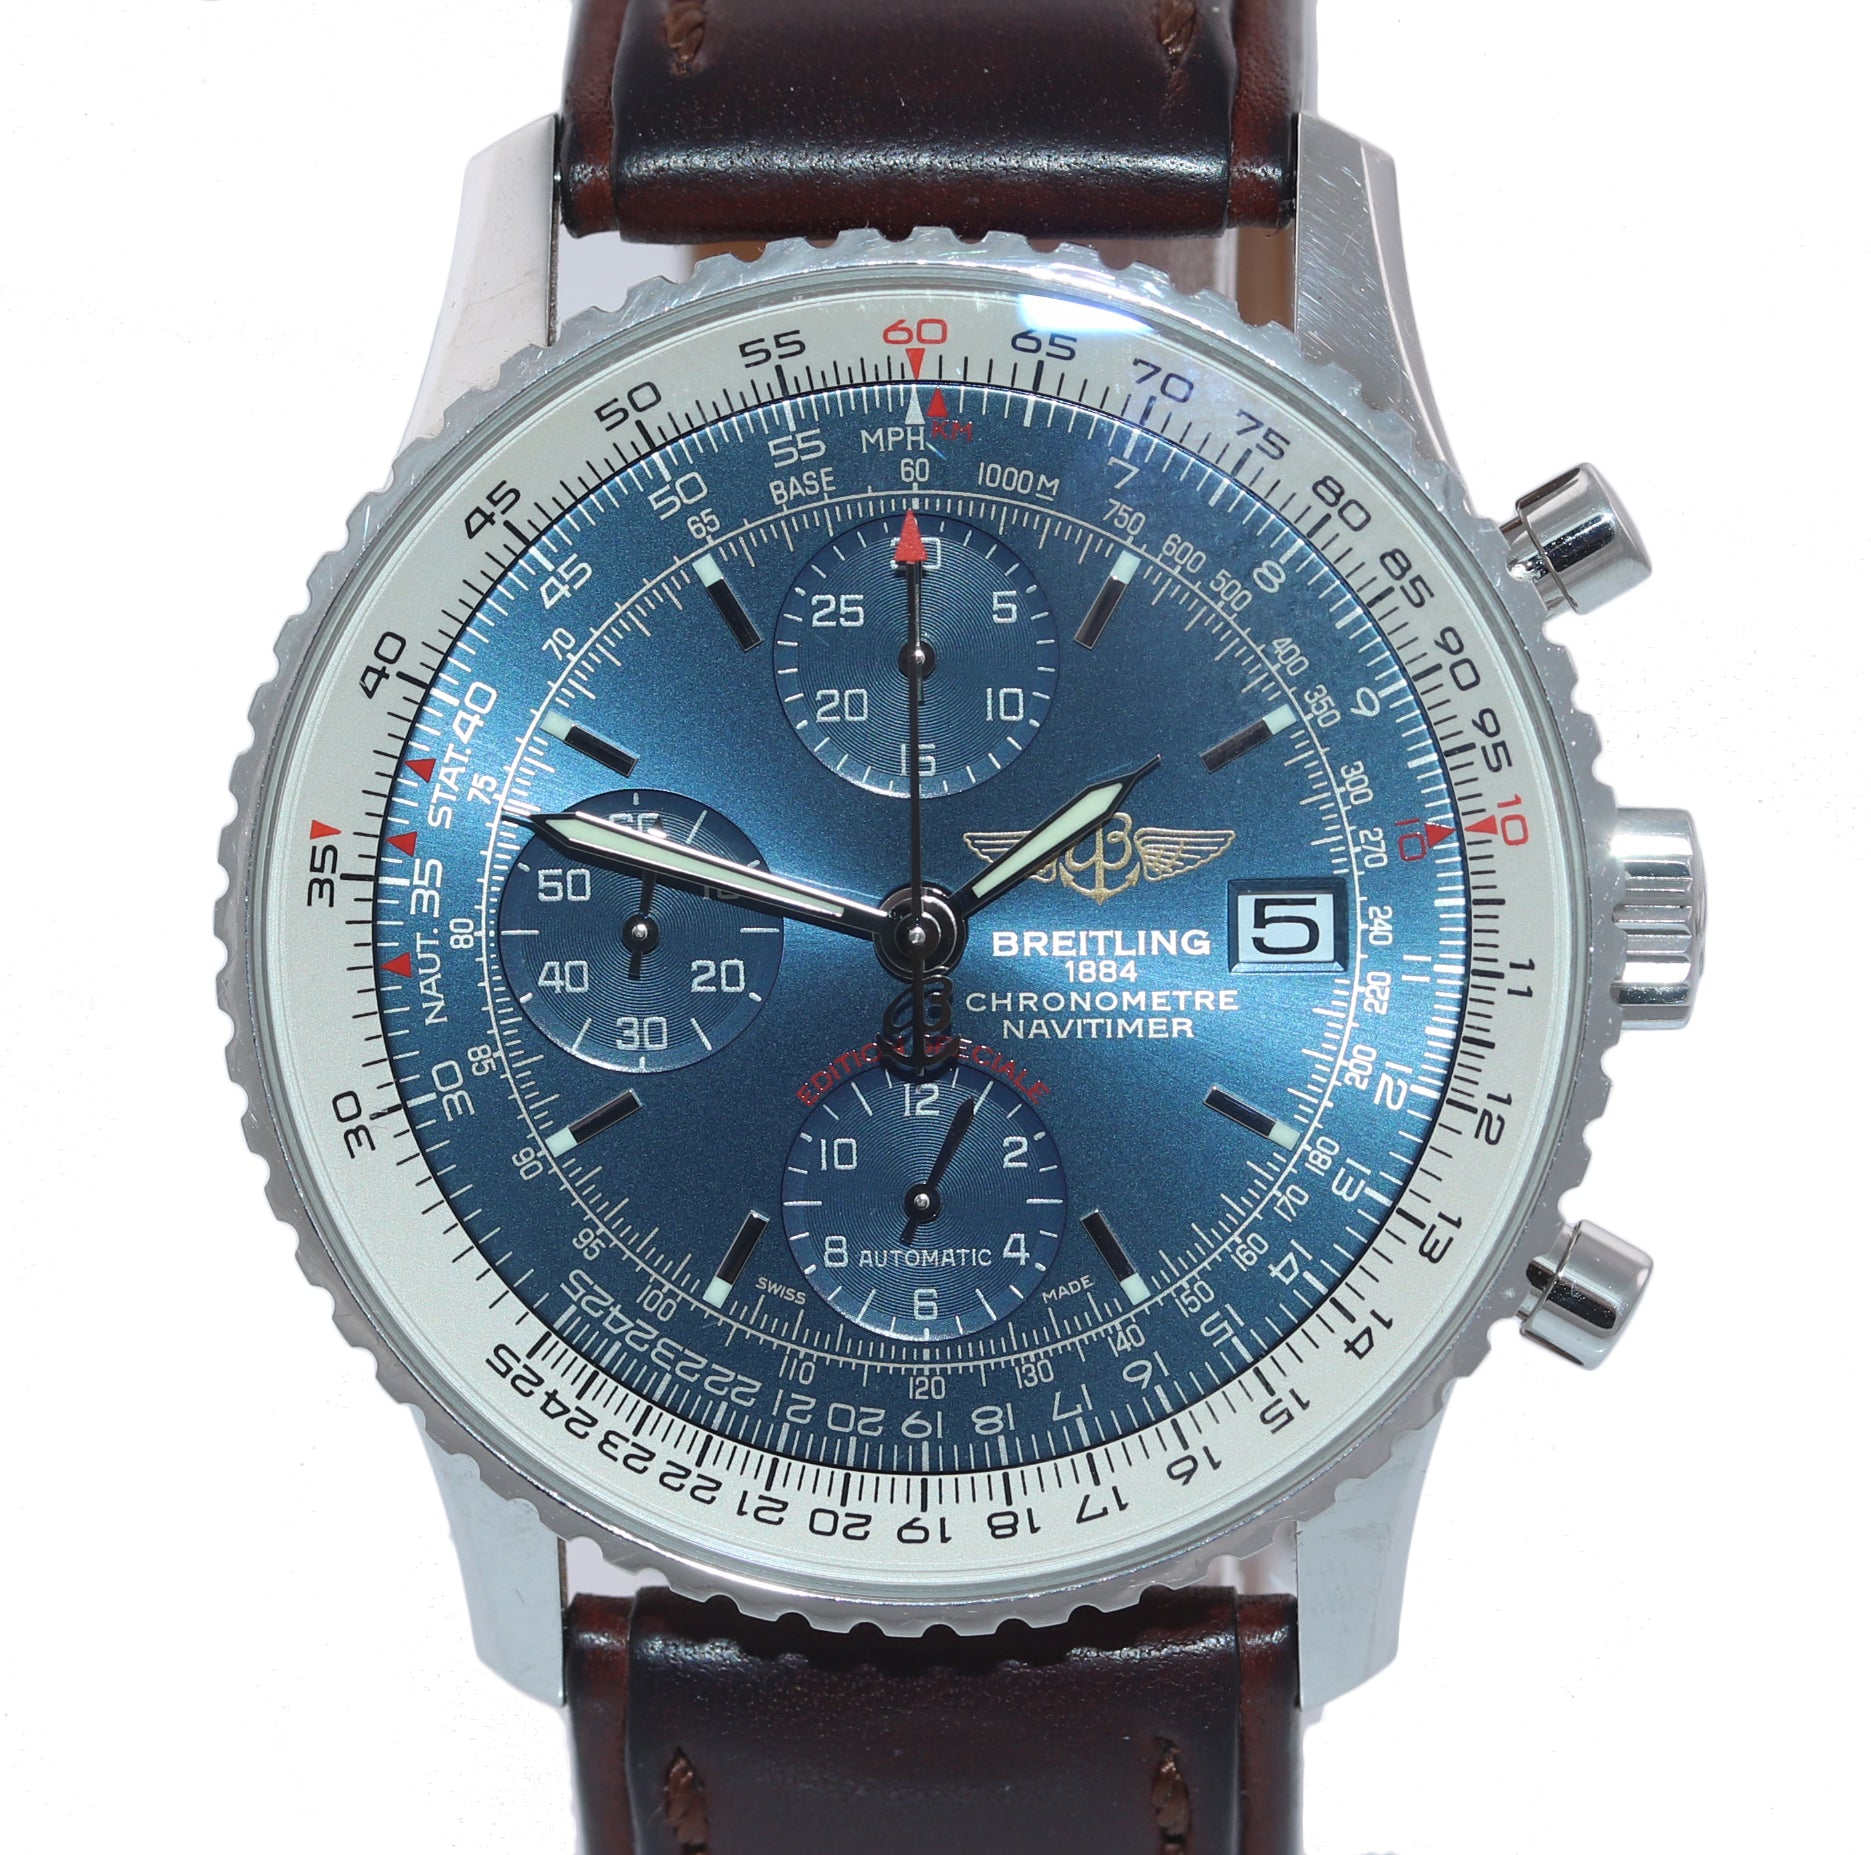 PAPERS Breitling Navitimer Chronograph 42mm Blue Dial Leather A13324 Watch